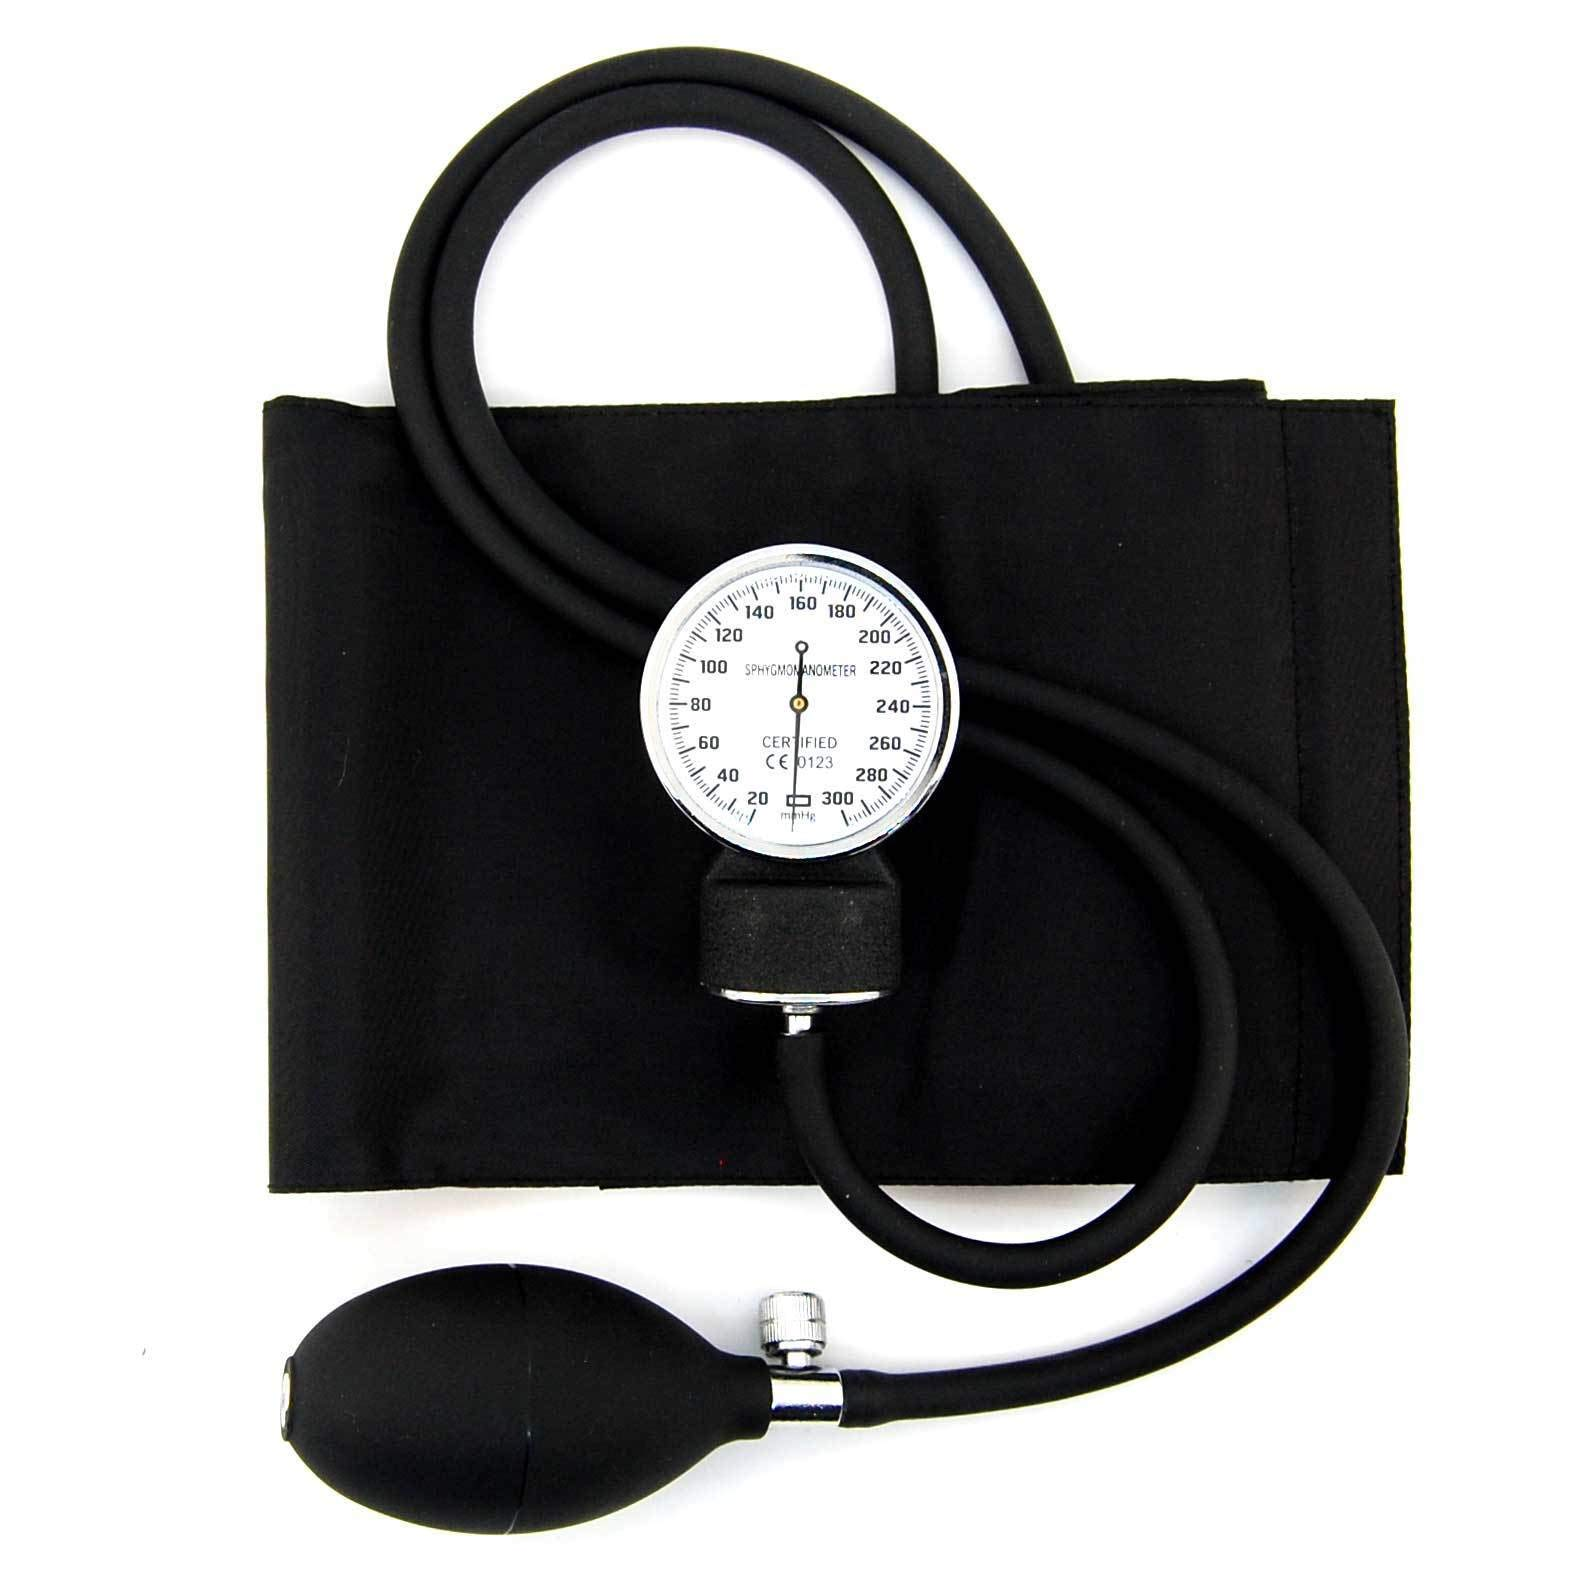 Professional Aneroid Sphygmomanometer Cuff Blood Pressure Monitor with Zipper Bag